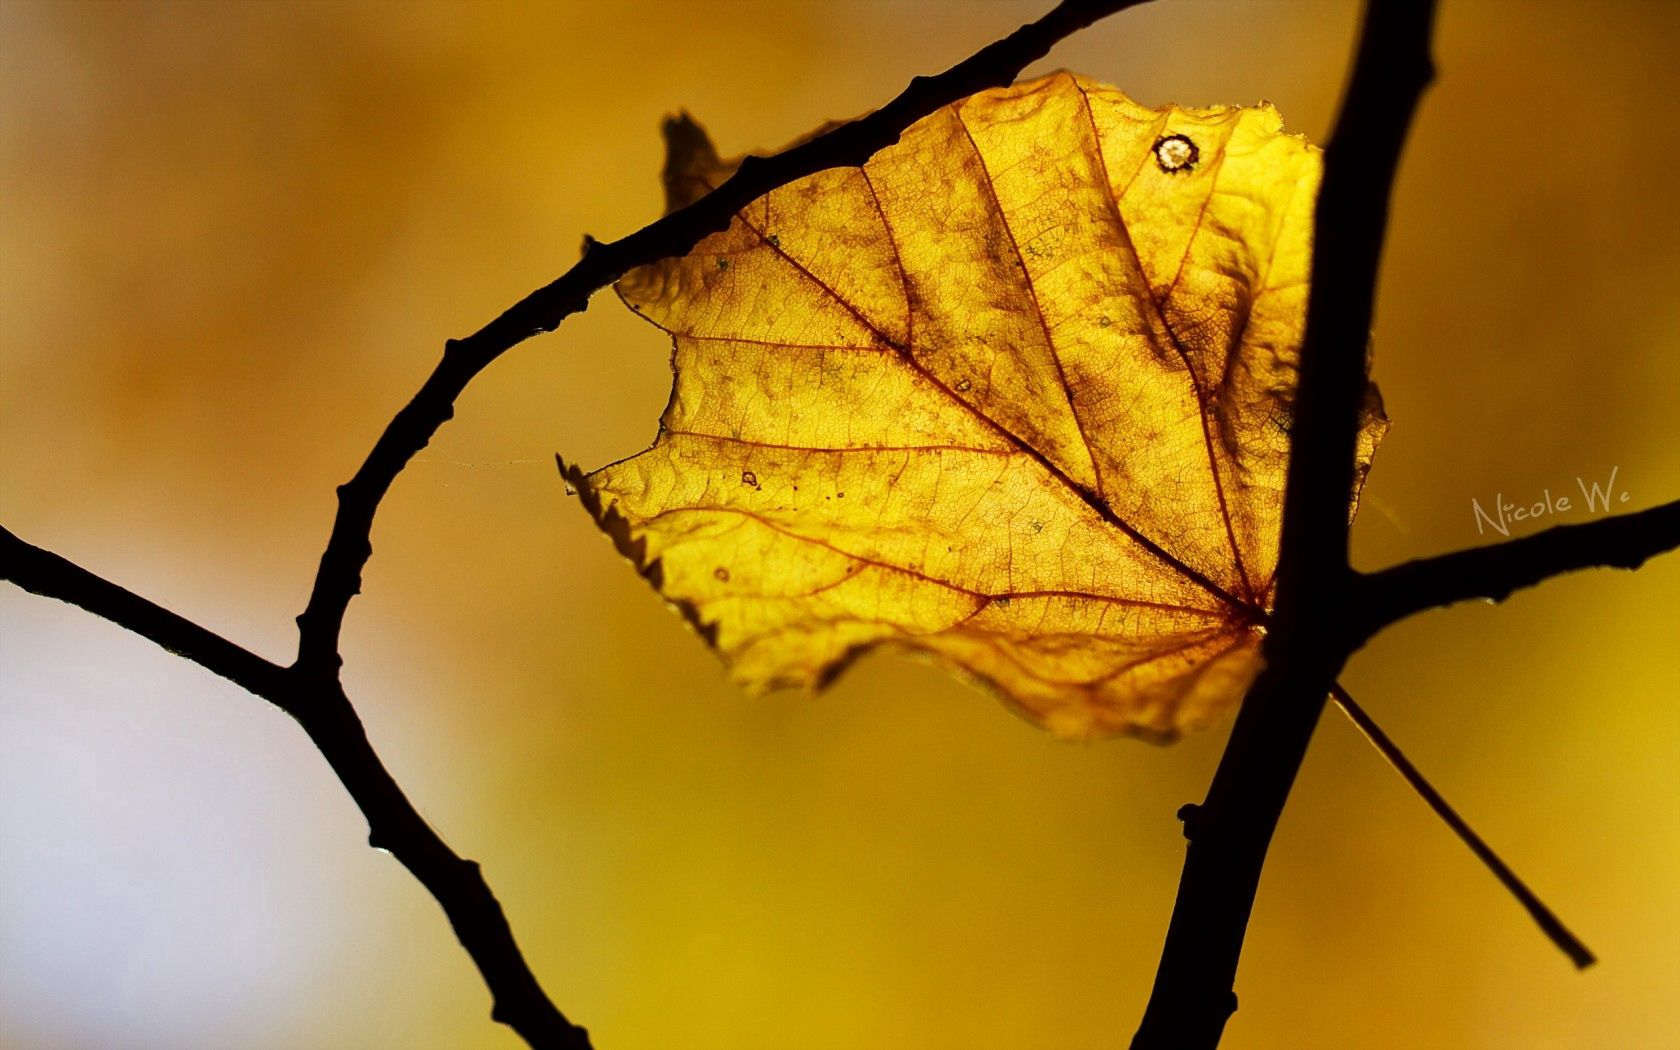 156679 download wallpaper Macro, Sheet, Leaf, Autumn screensavers and pictures for free